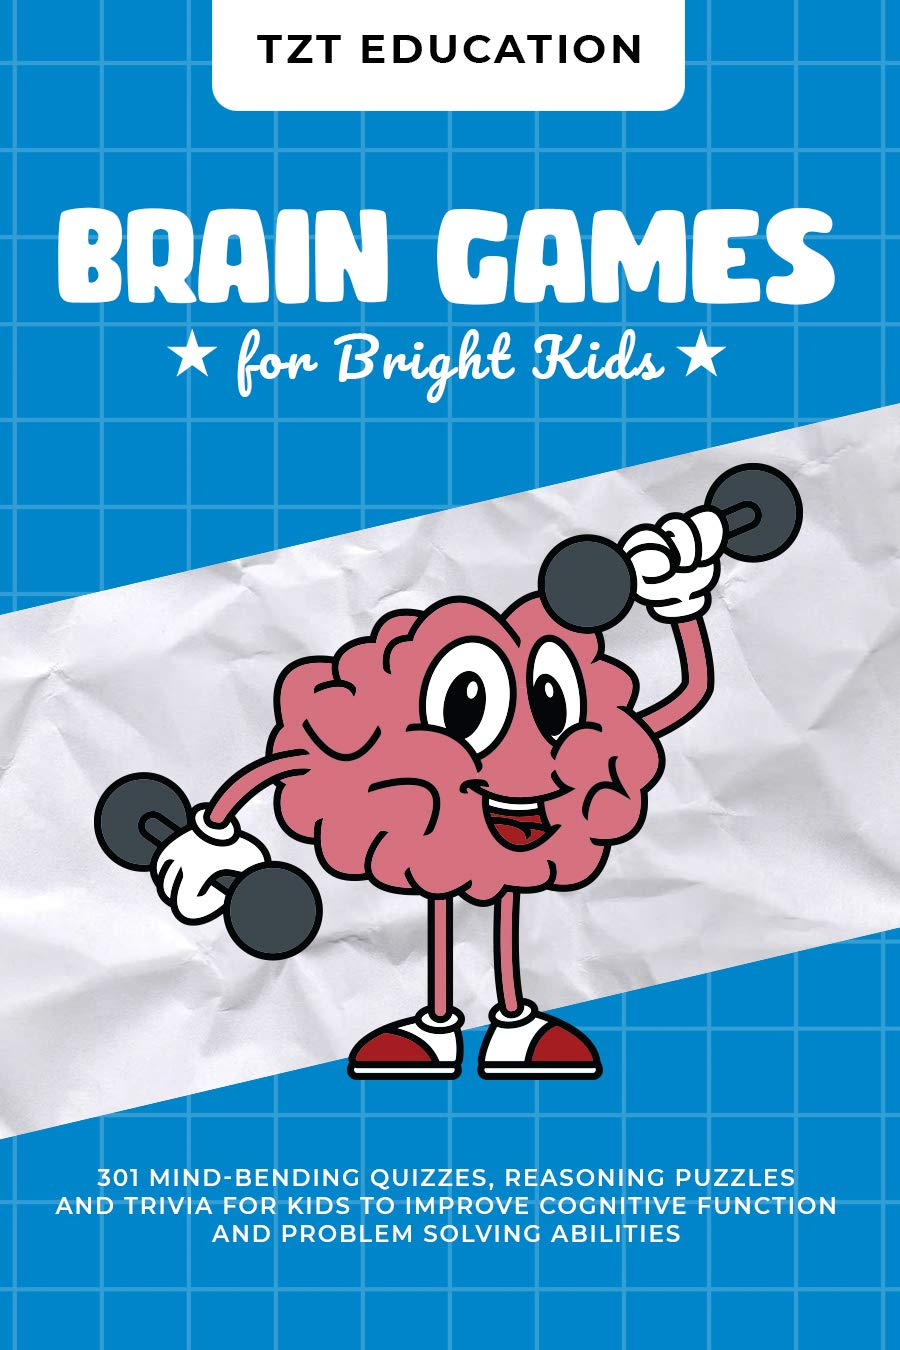 Brain Games for Bright Kids: 301 Mind-Bending Quizzes, Reasoning Puzzles, and Trivia for Kids to Improve Cognitive Ability and Problem-Solving Skills